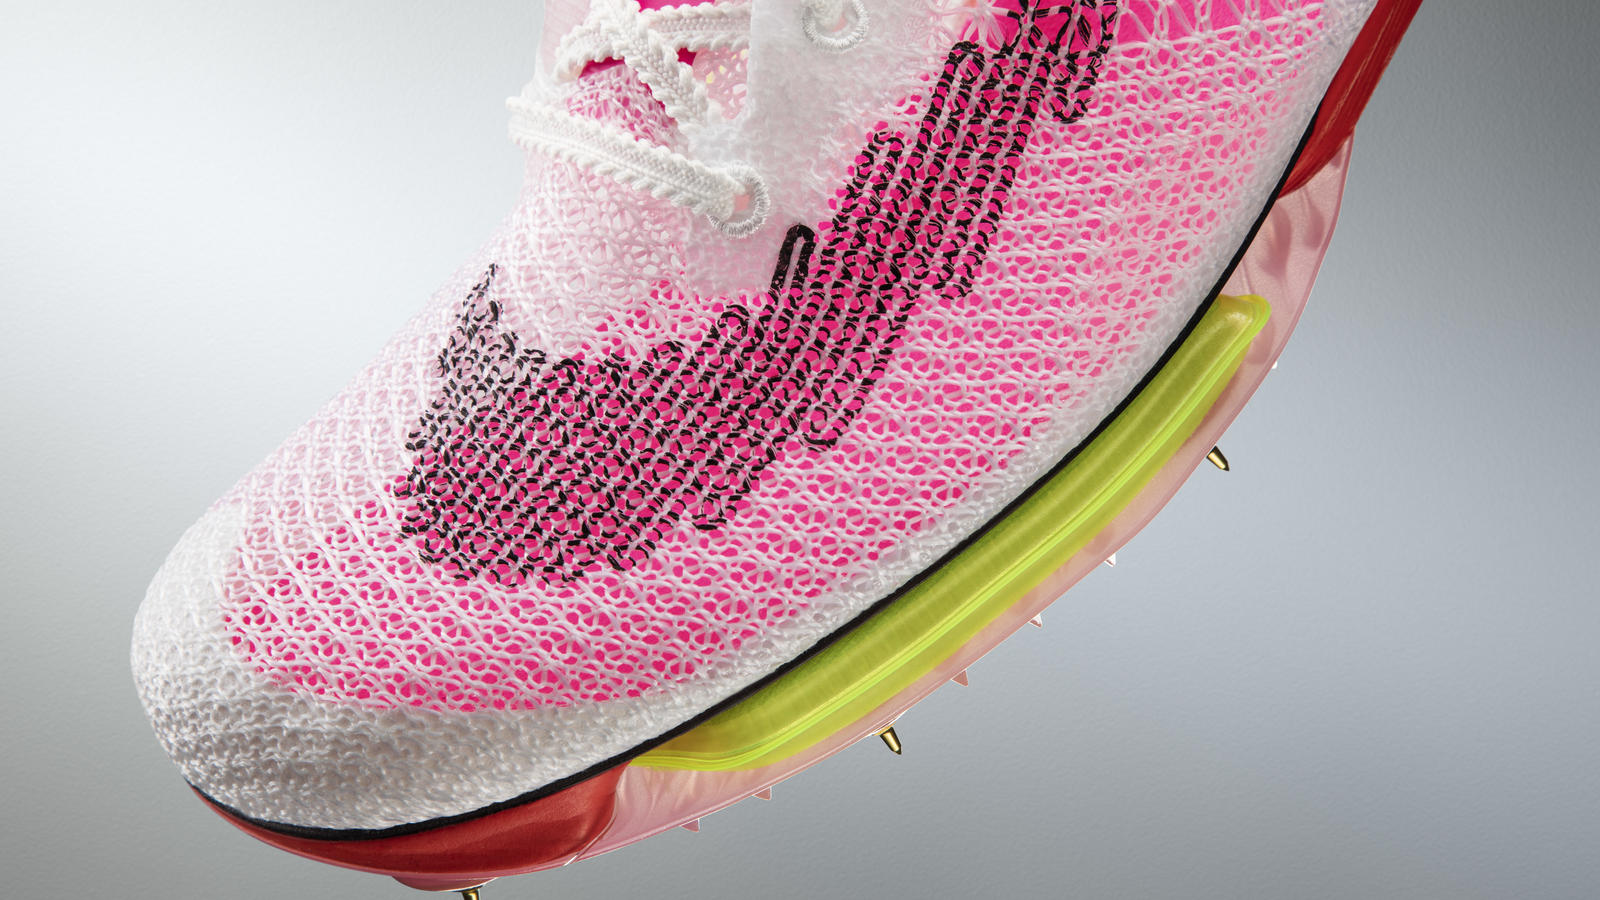 Nike Gallery - Track and Field 34